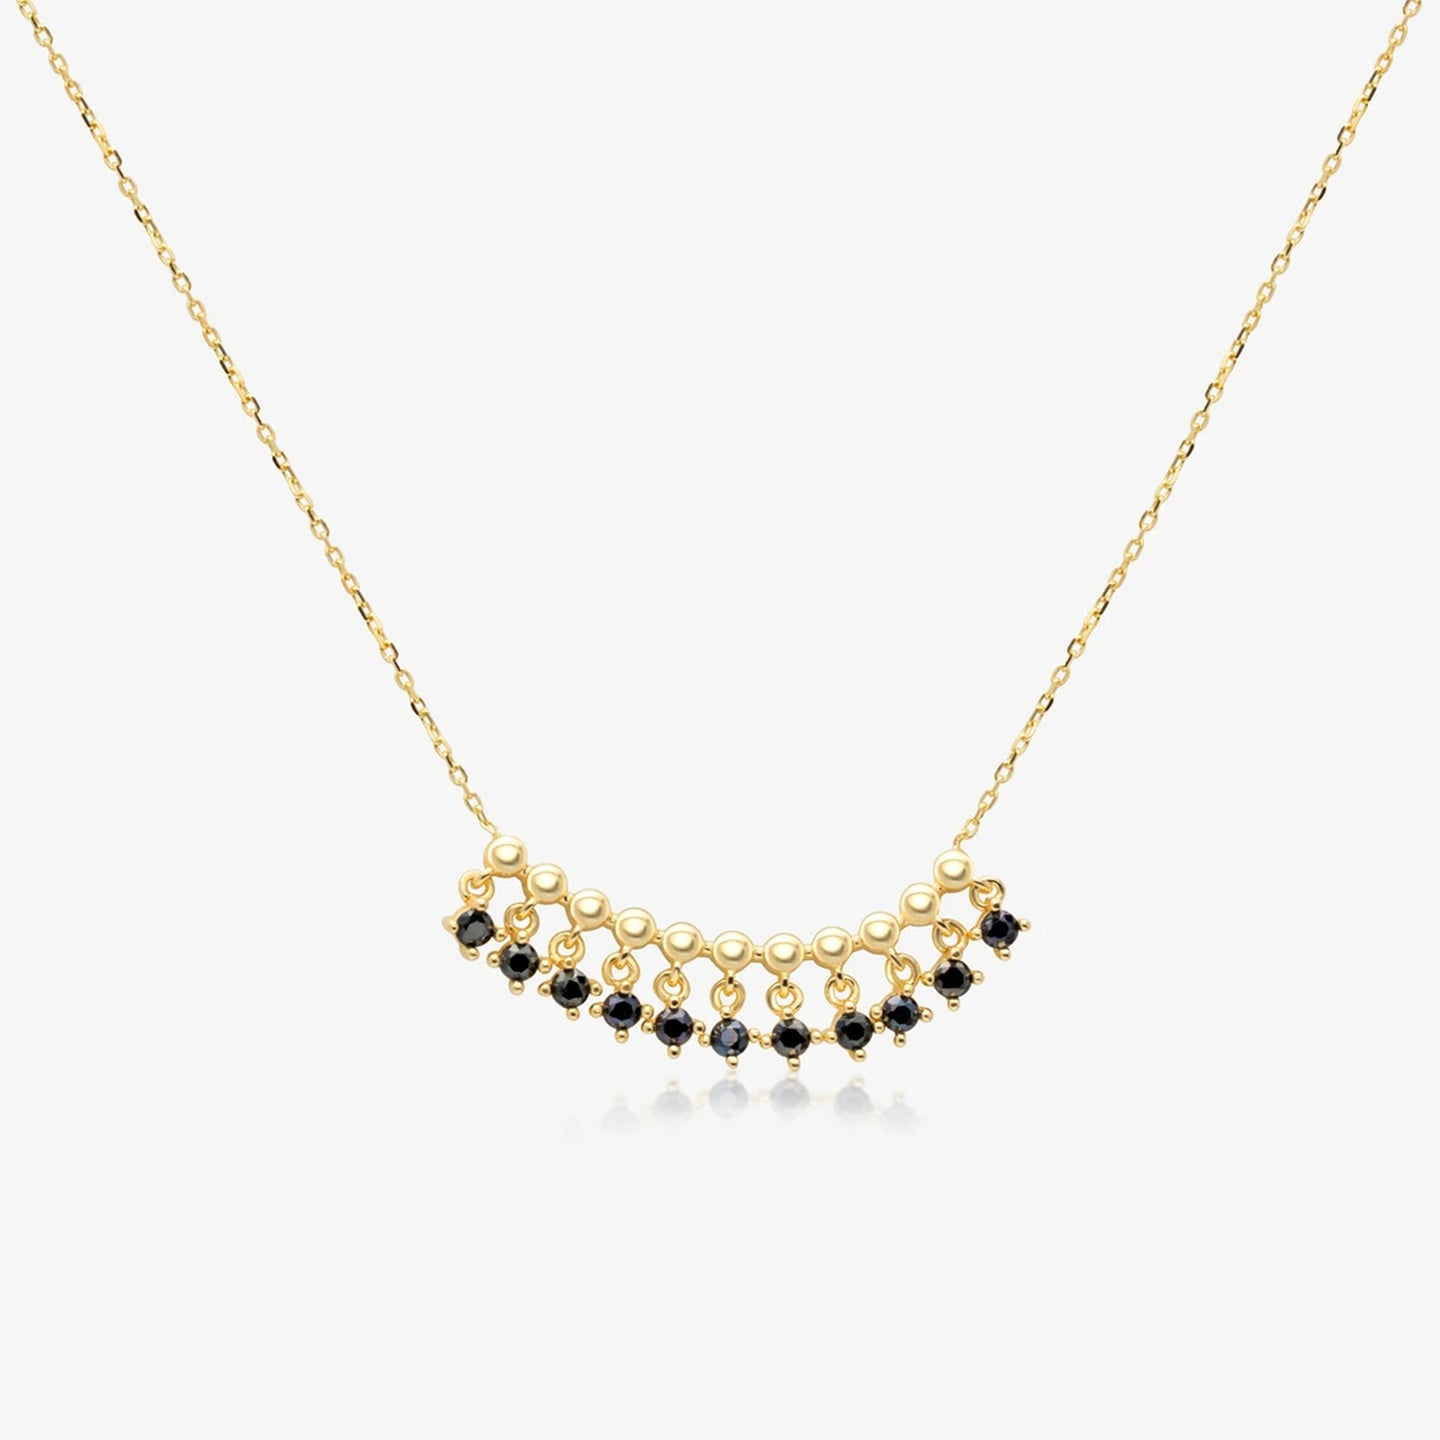 14K Gold Black Onyx Bead Fringe Bar Necklace 18